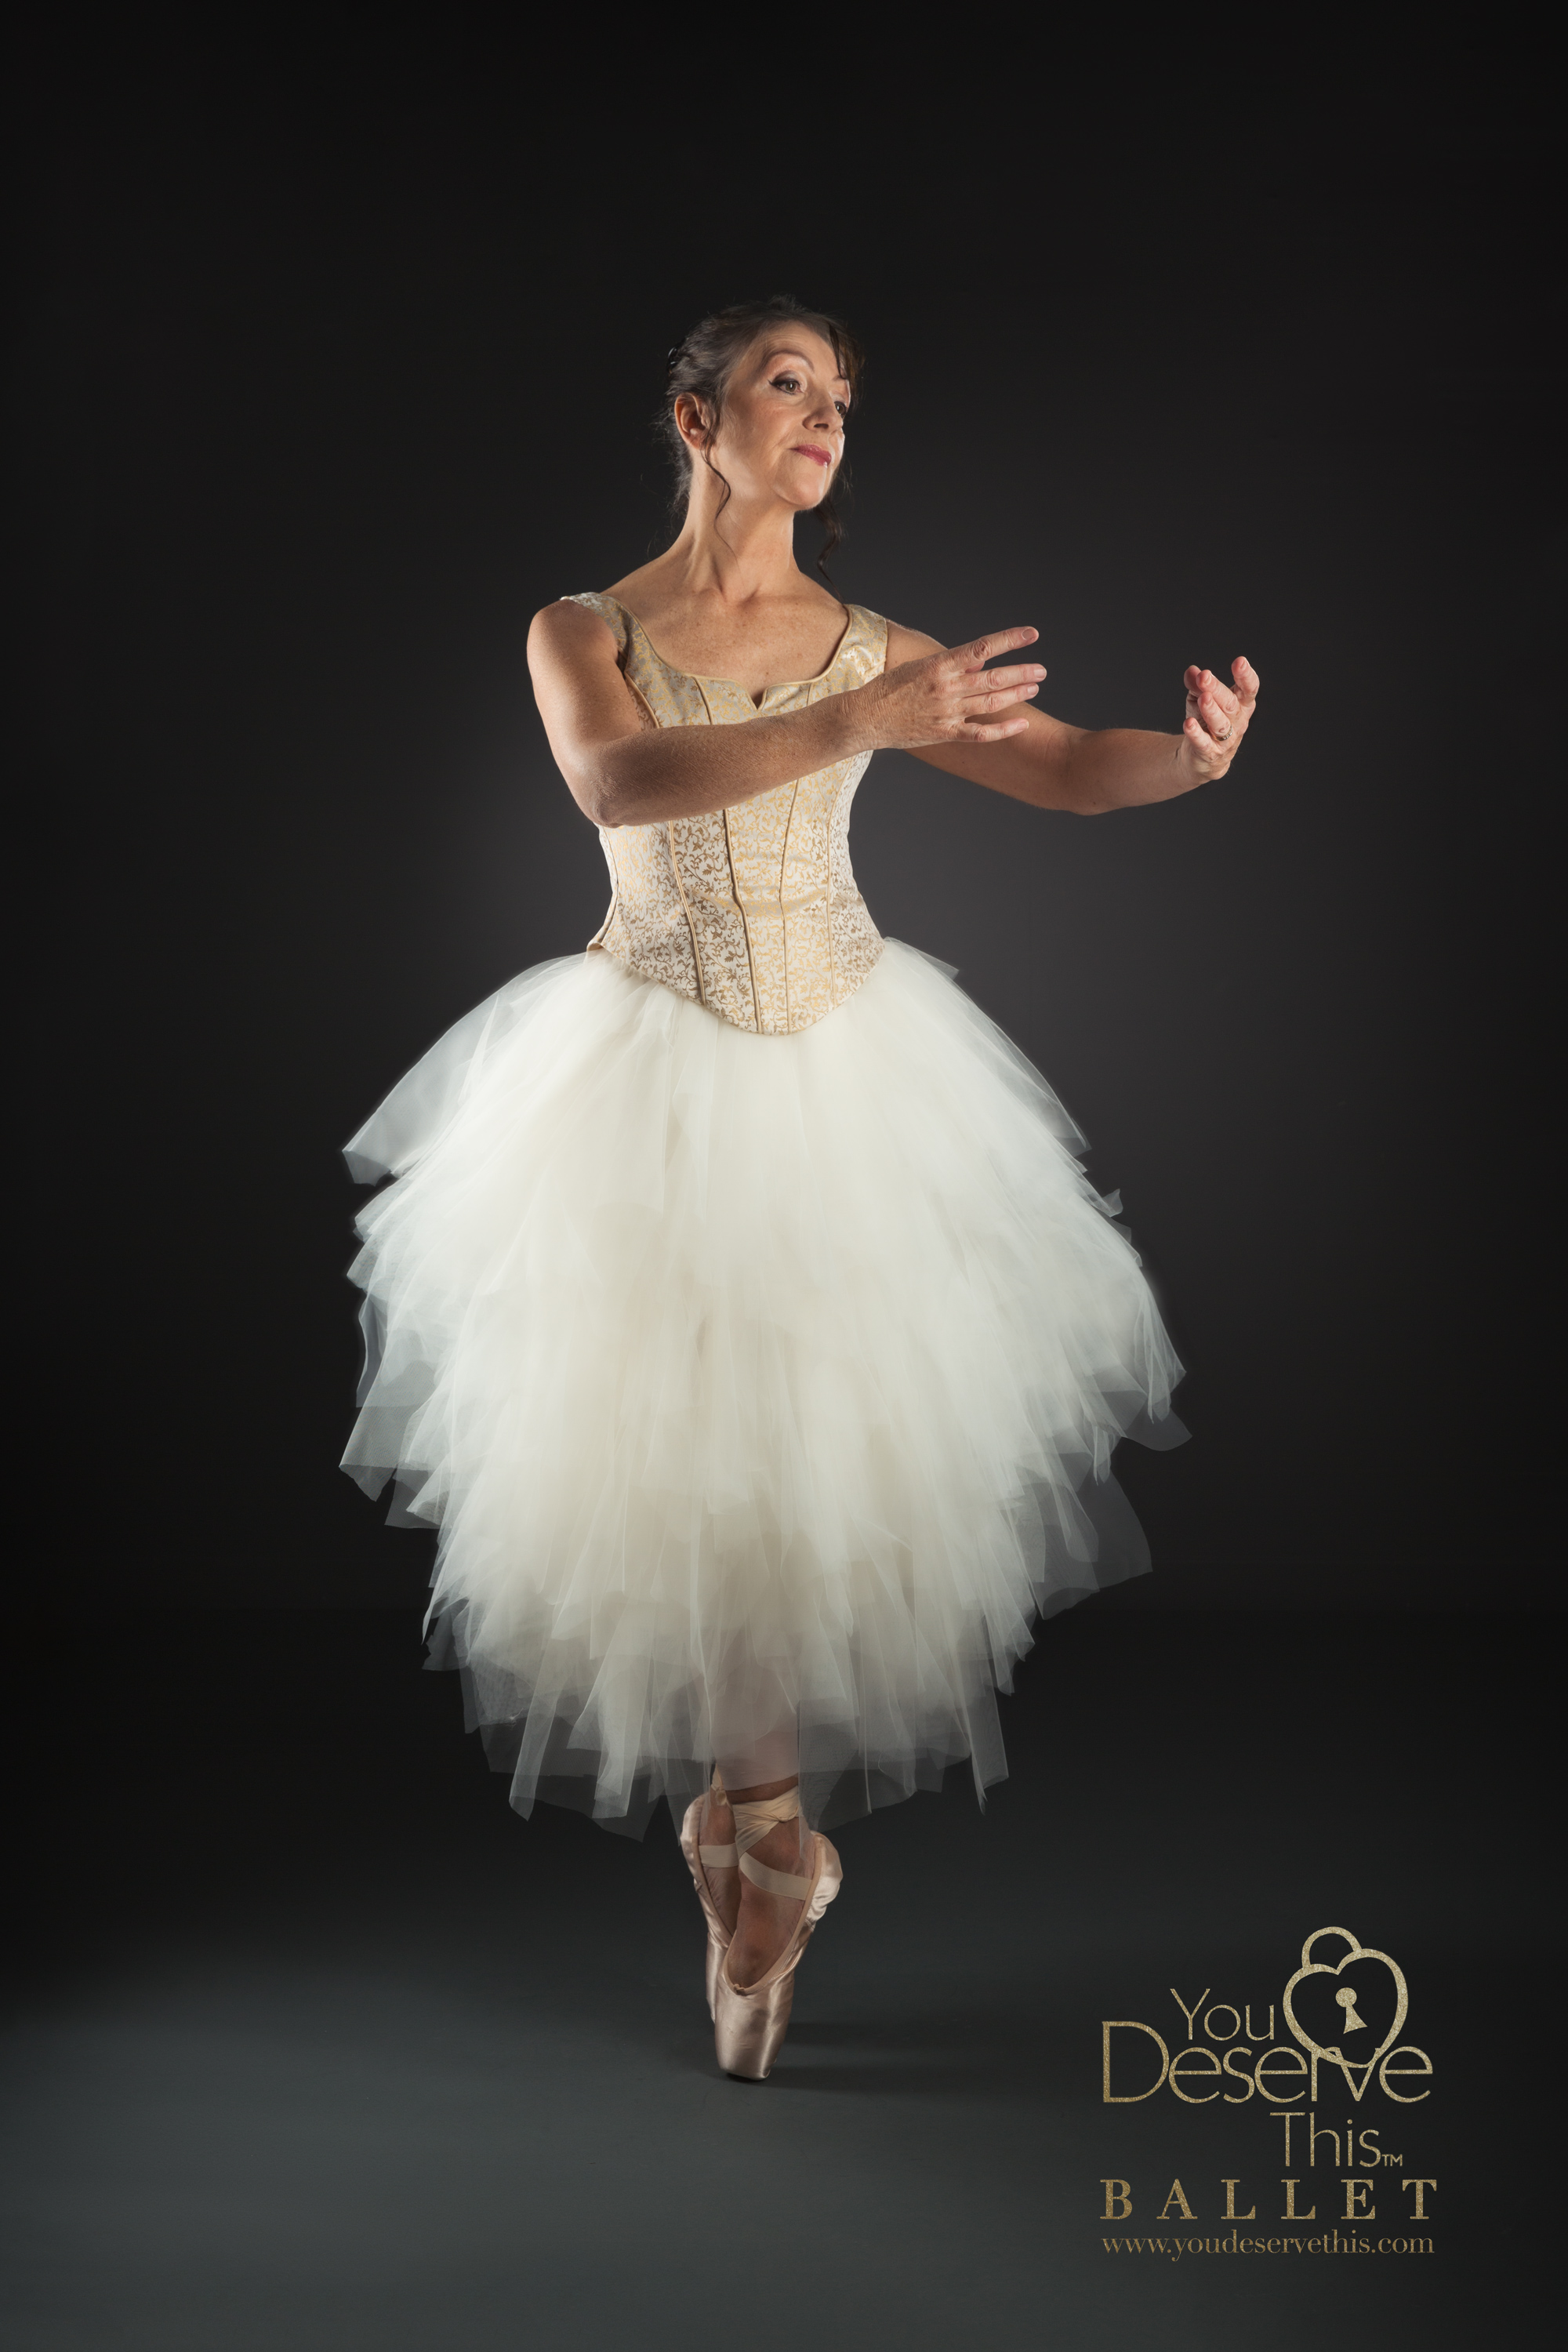 Beautiful Ballet Portraits from You Deserve This Photography, Basingstoke, Hampshire UK